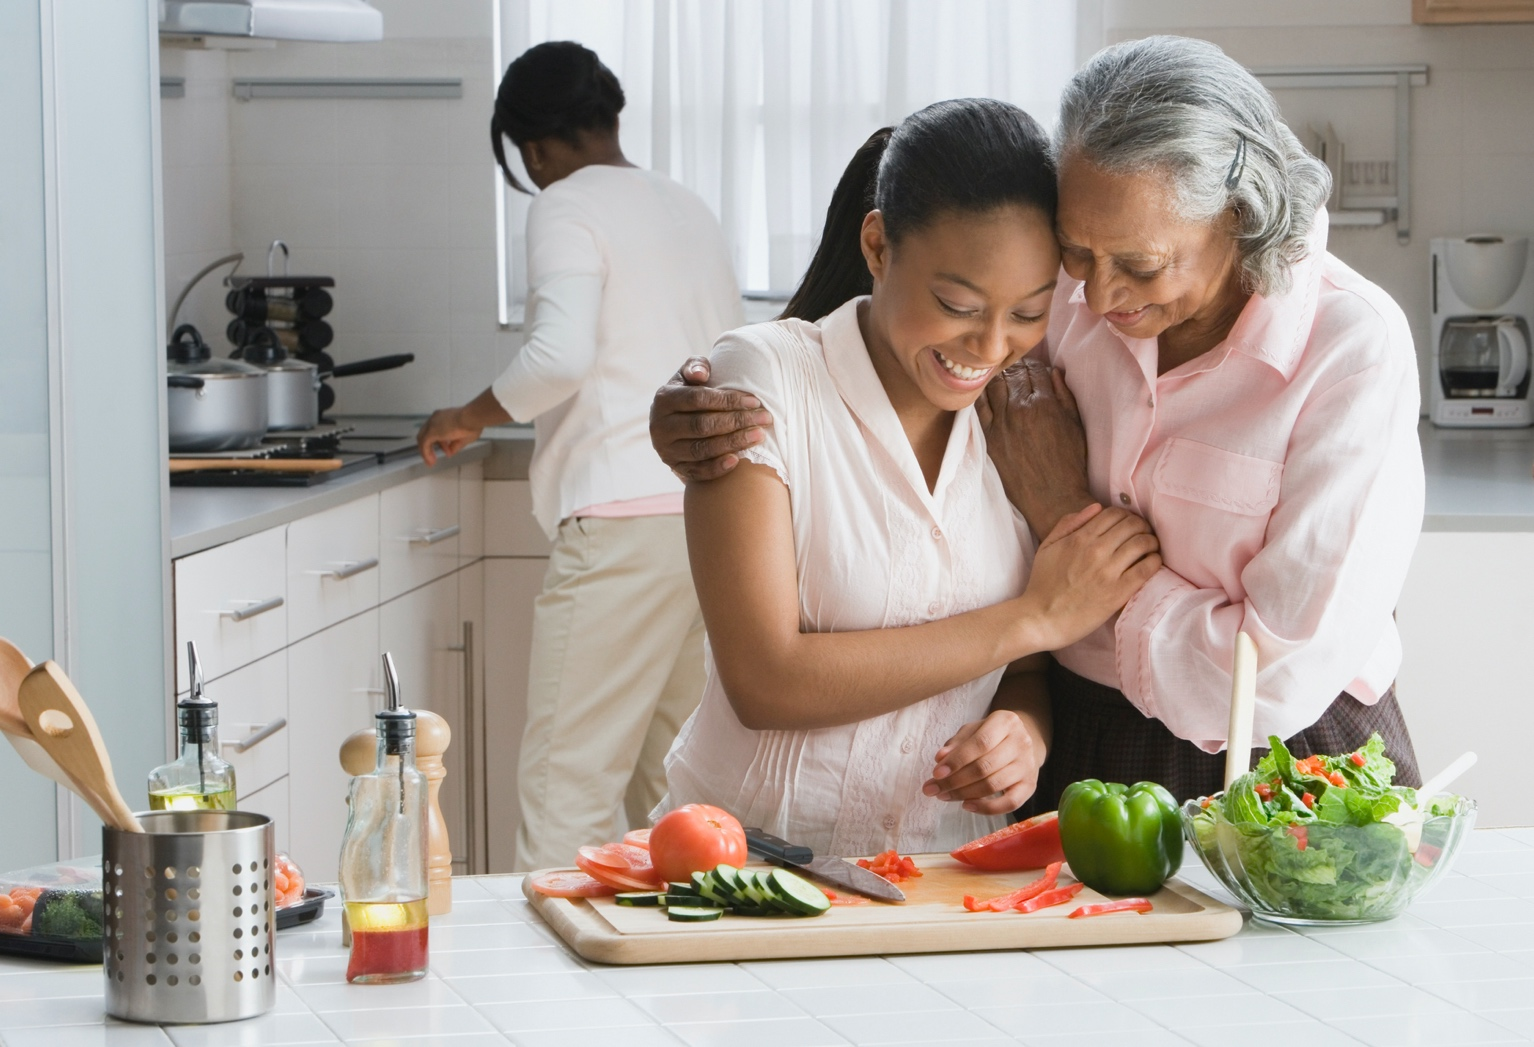 grandmother and granddaughter at the kitchen counter preparing food